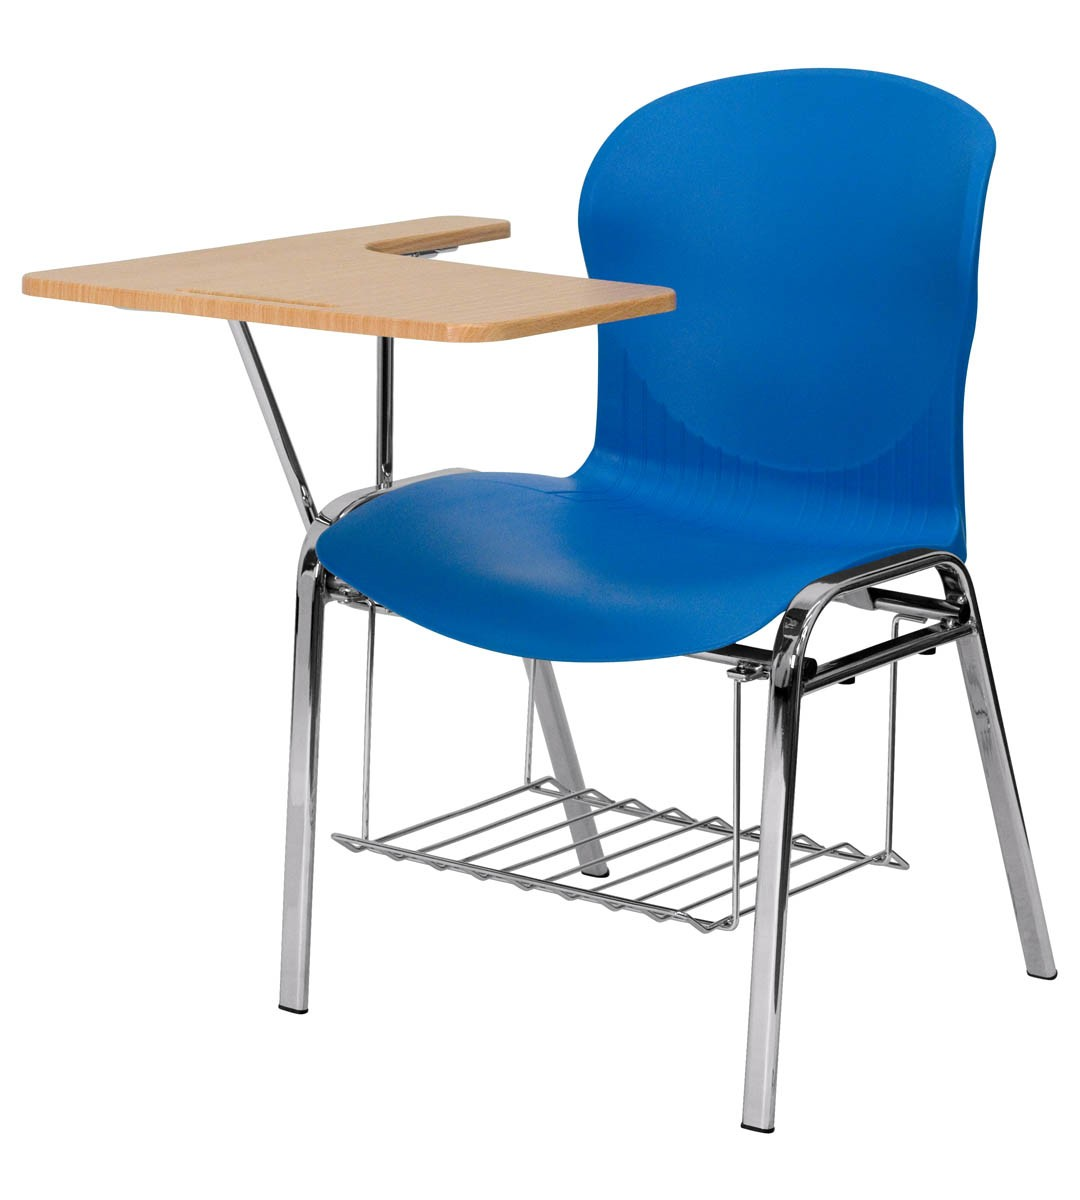 Chair Rack Hercules Series Blue Shell Chair With Right Handed Laminate Tablet Arm And Book Rack